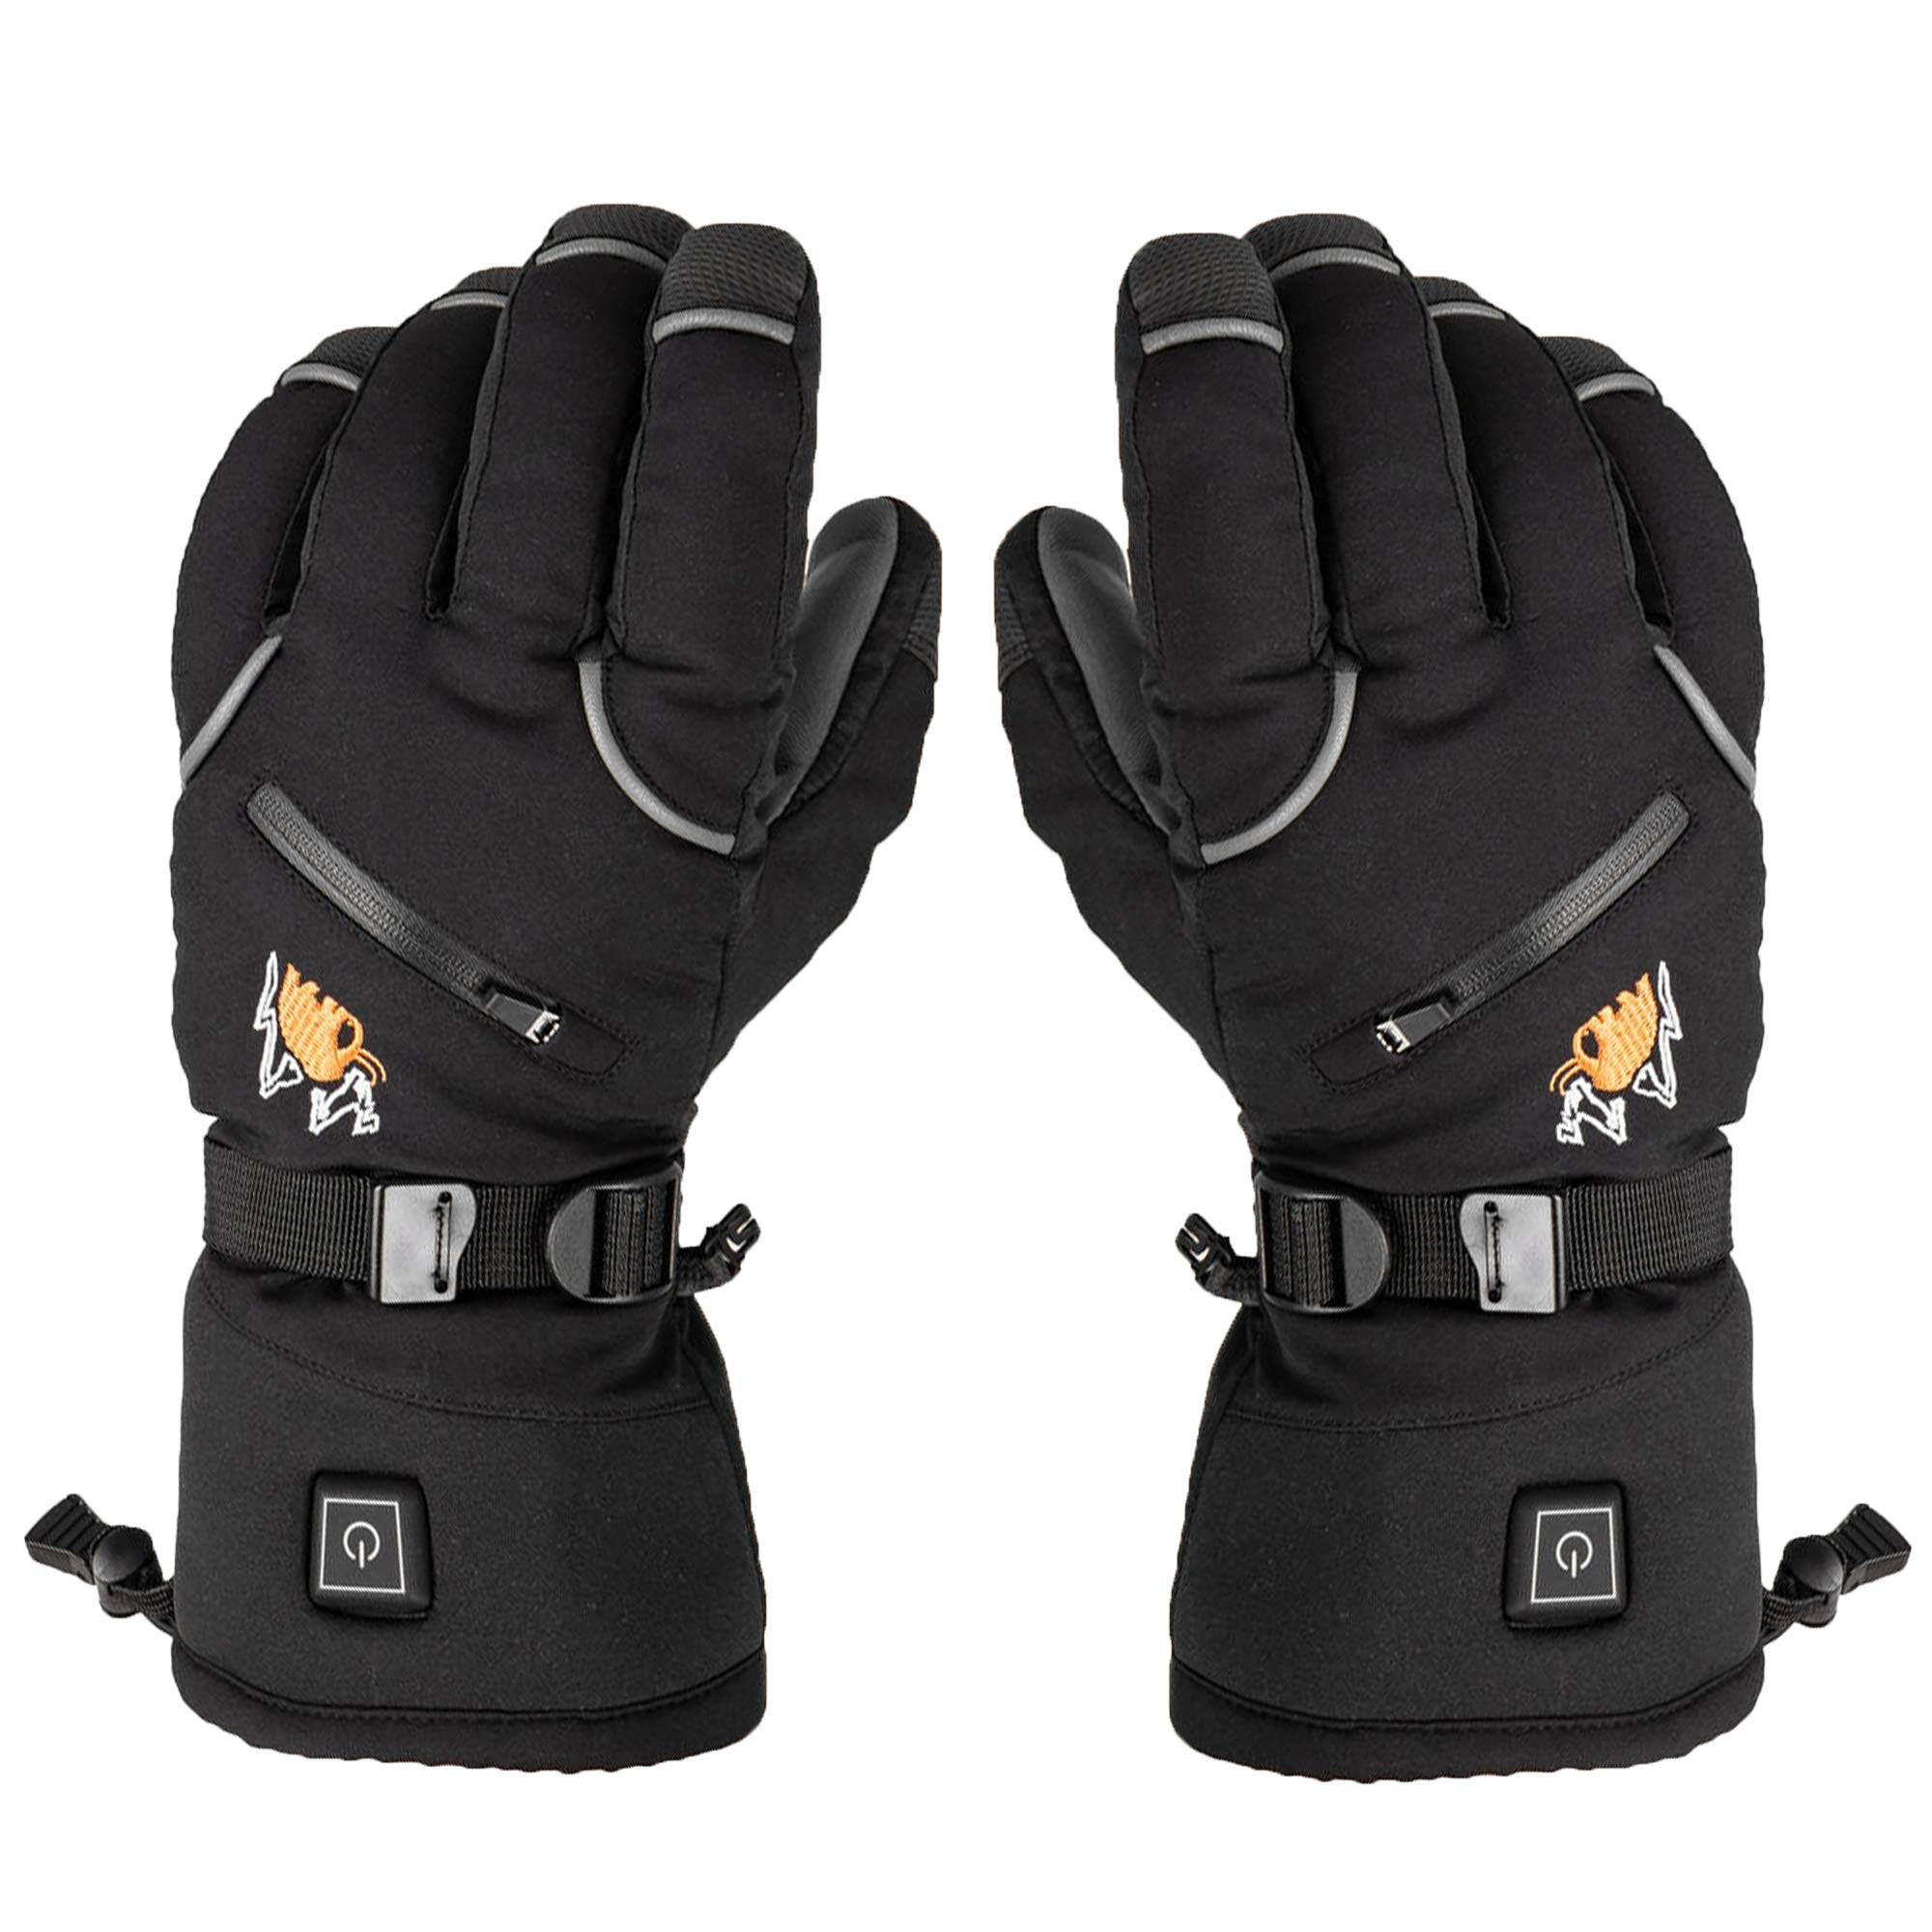 American Mammoth Heated Gloves for Men & Women - Battery Electric Heated Warm Cycling Motorcycle| Works Up to 6 Hours (Small Mens Glove) by American Mammoth